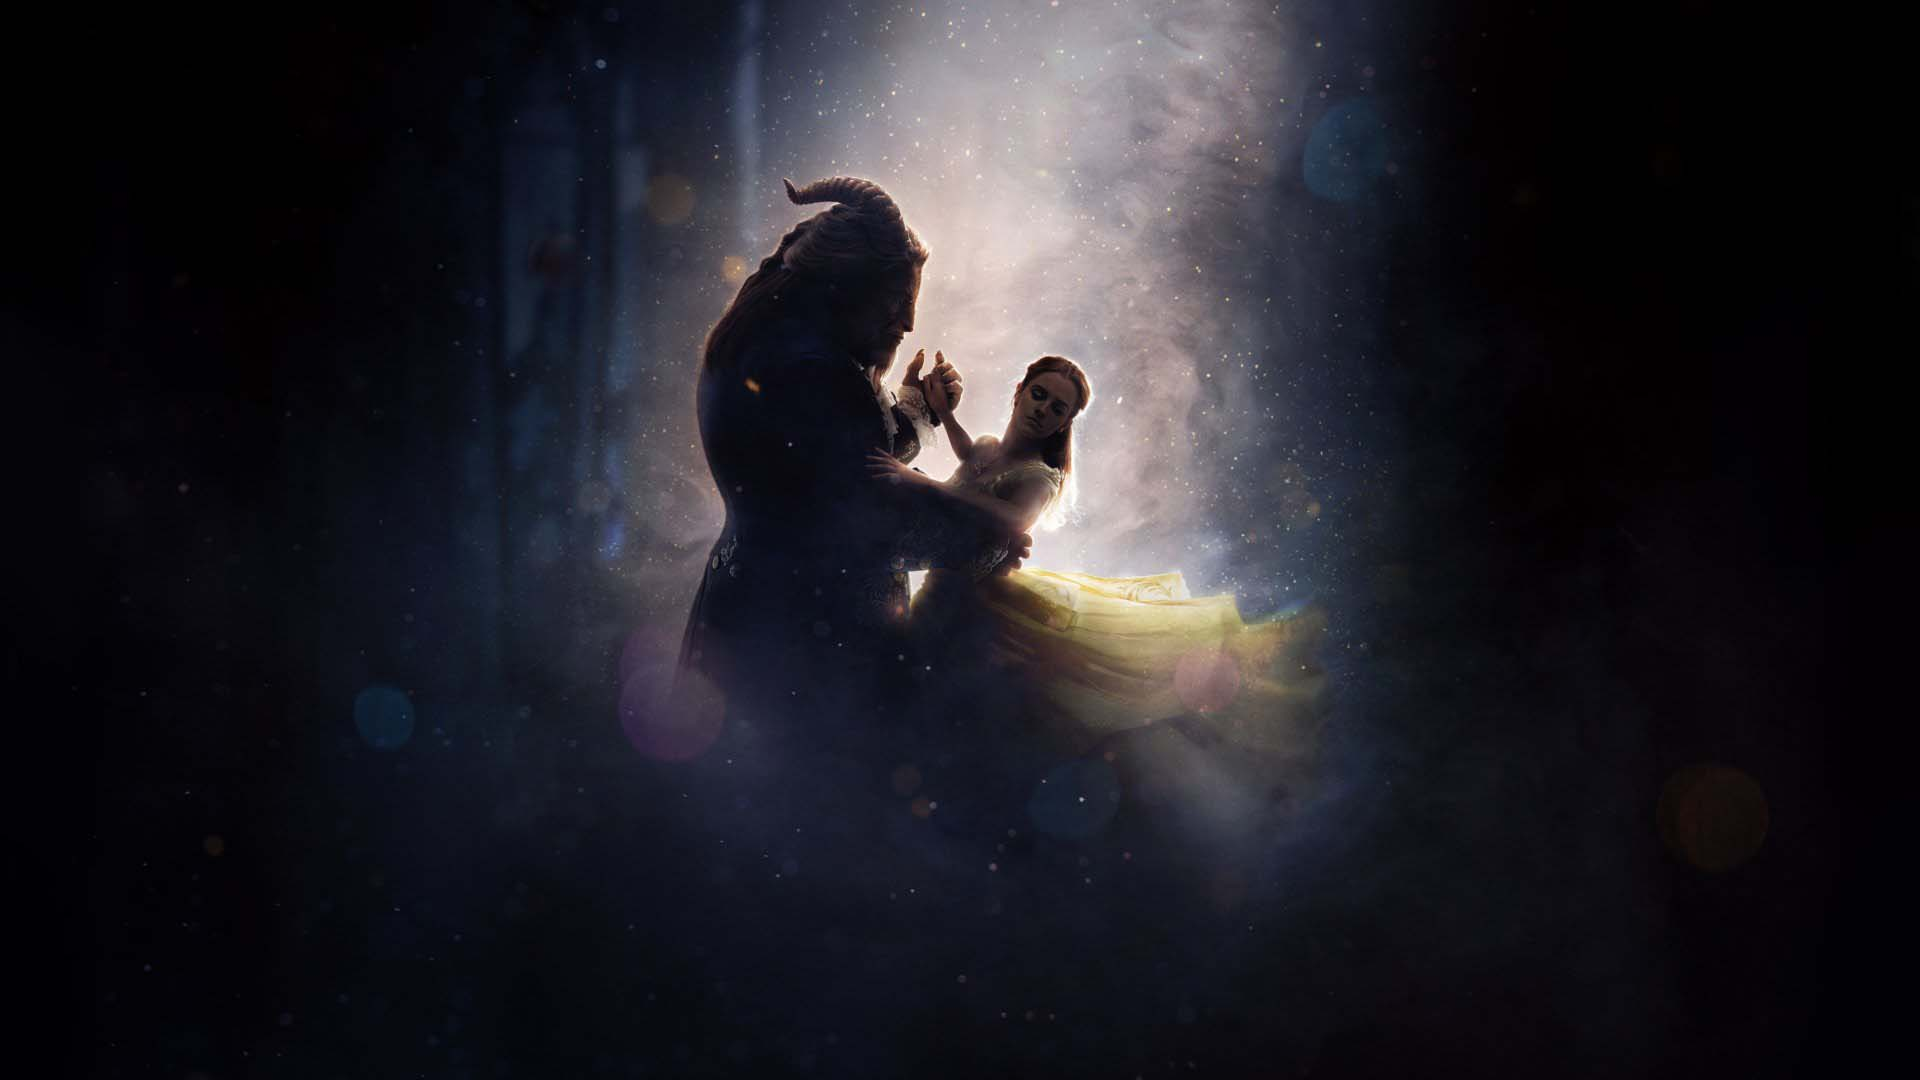 The 120 Most Famous Beauty And The Beast Quotes